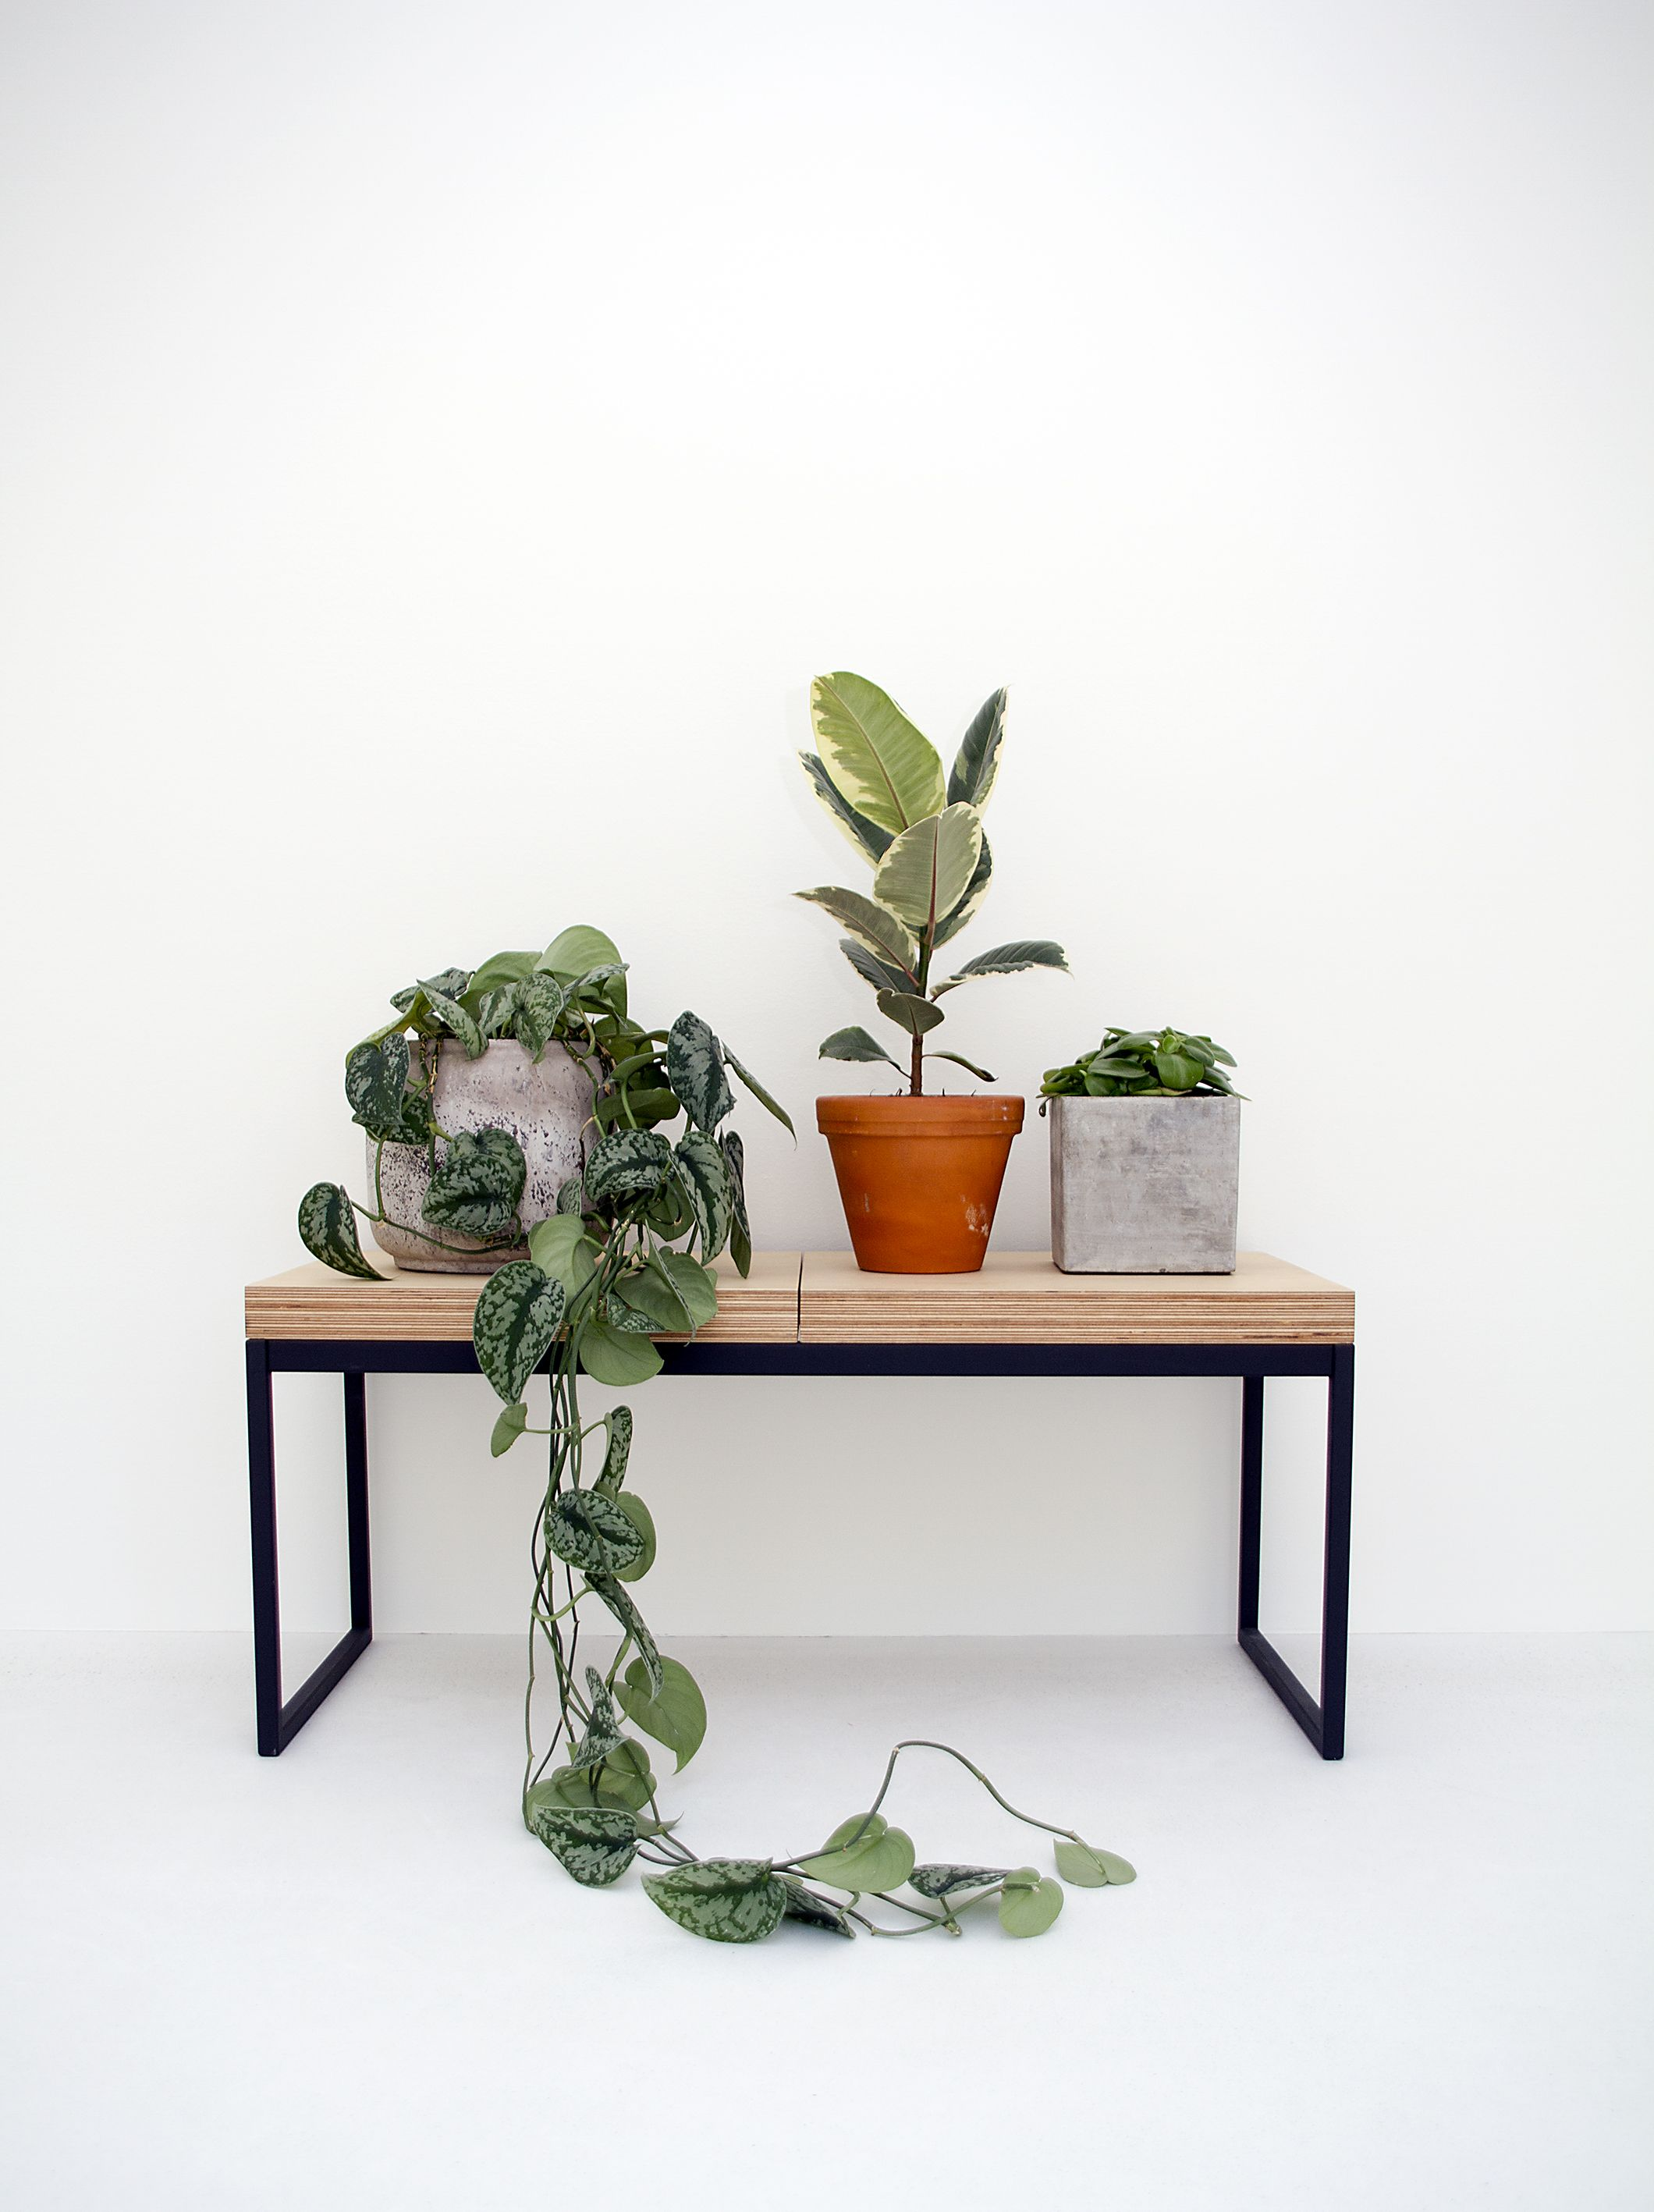 indoor plants and potted house plants on a bench in a